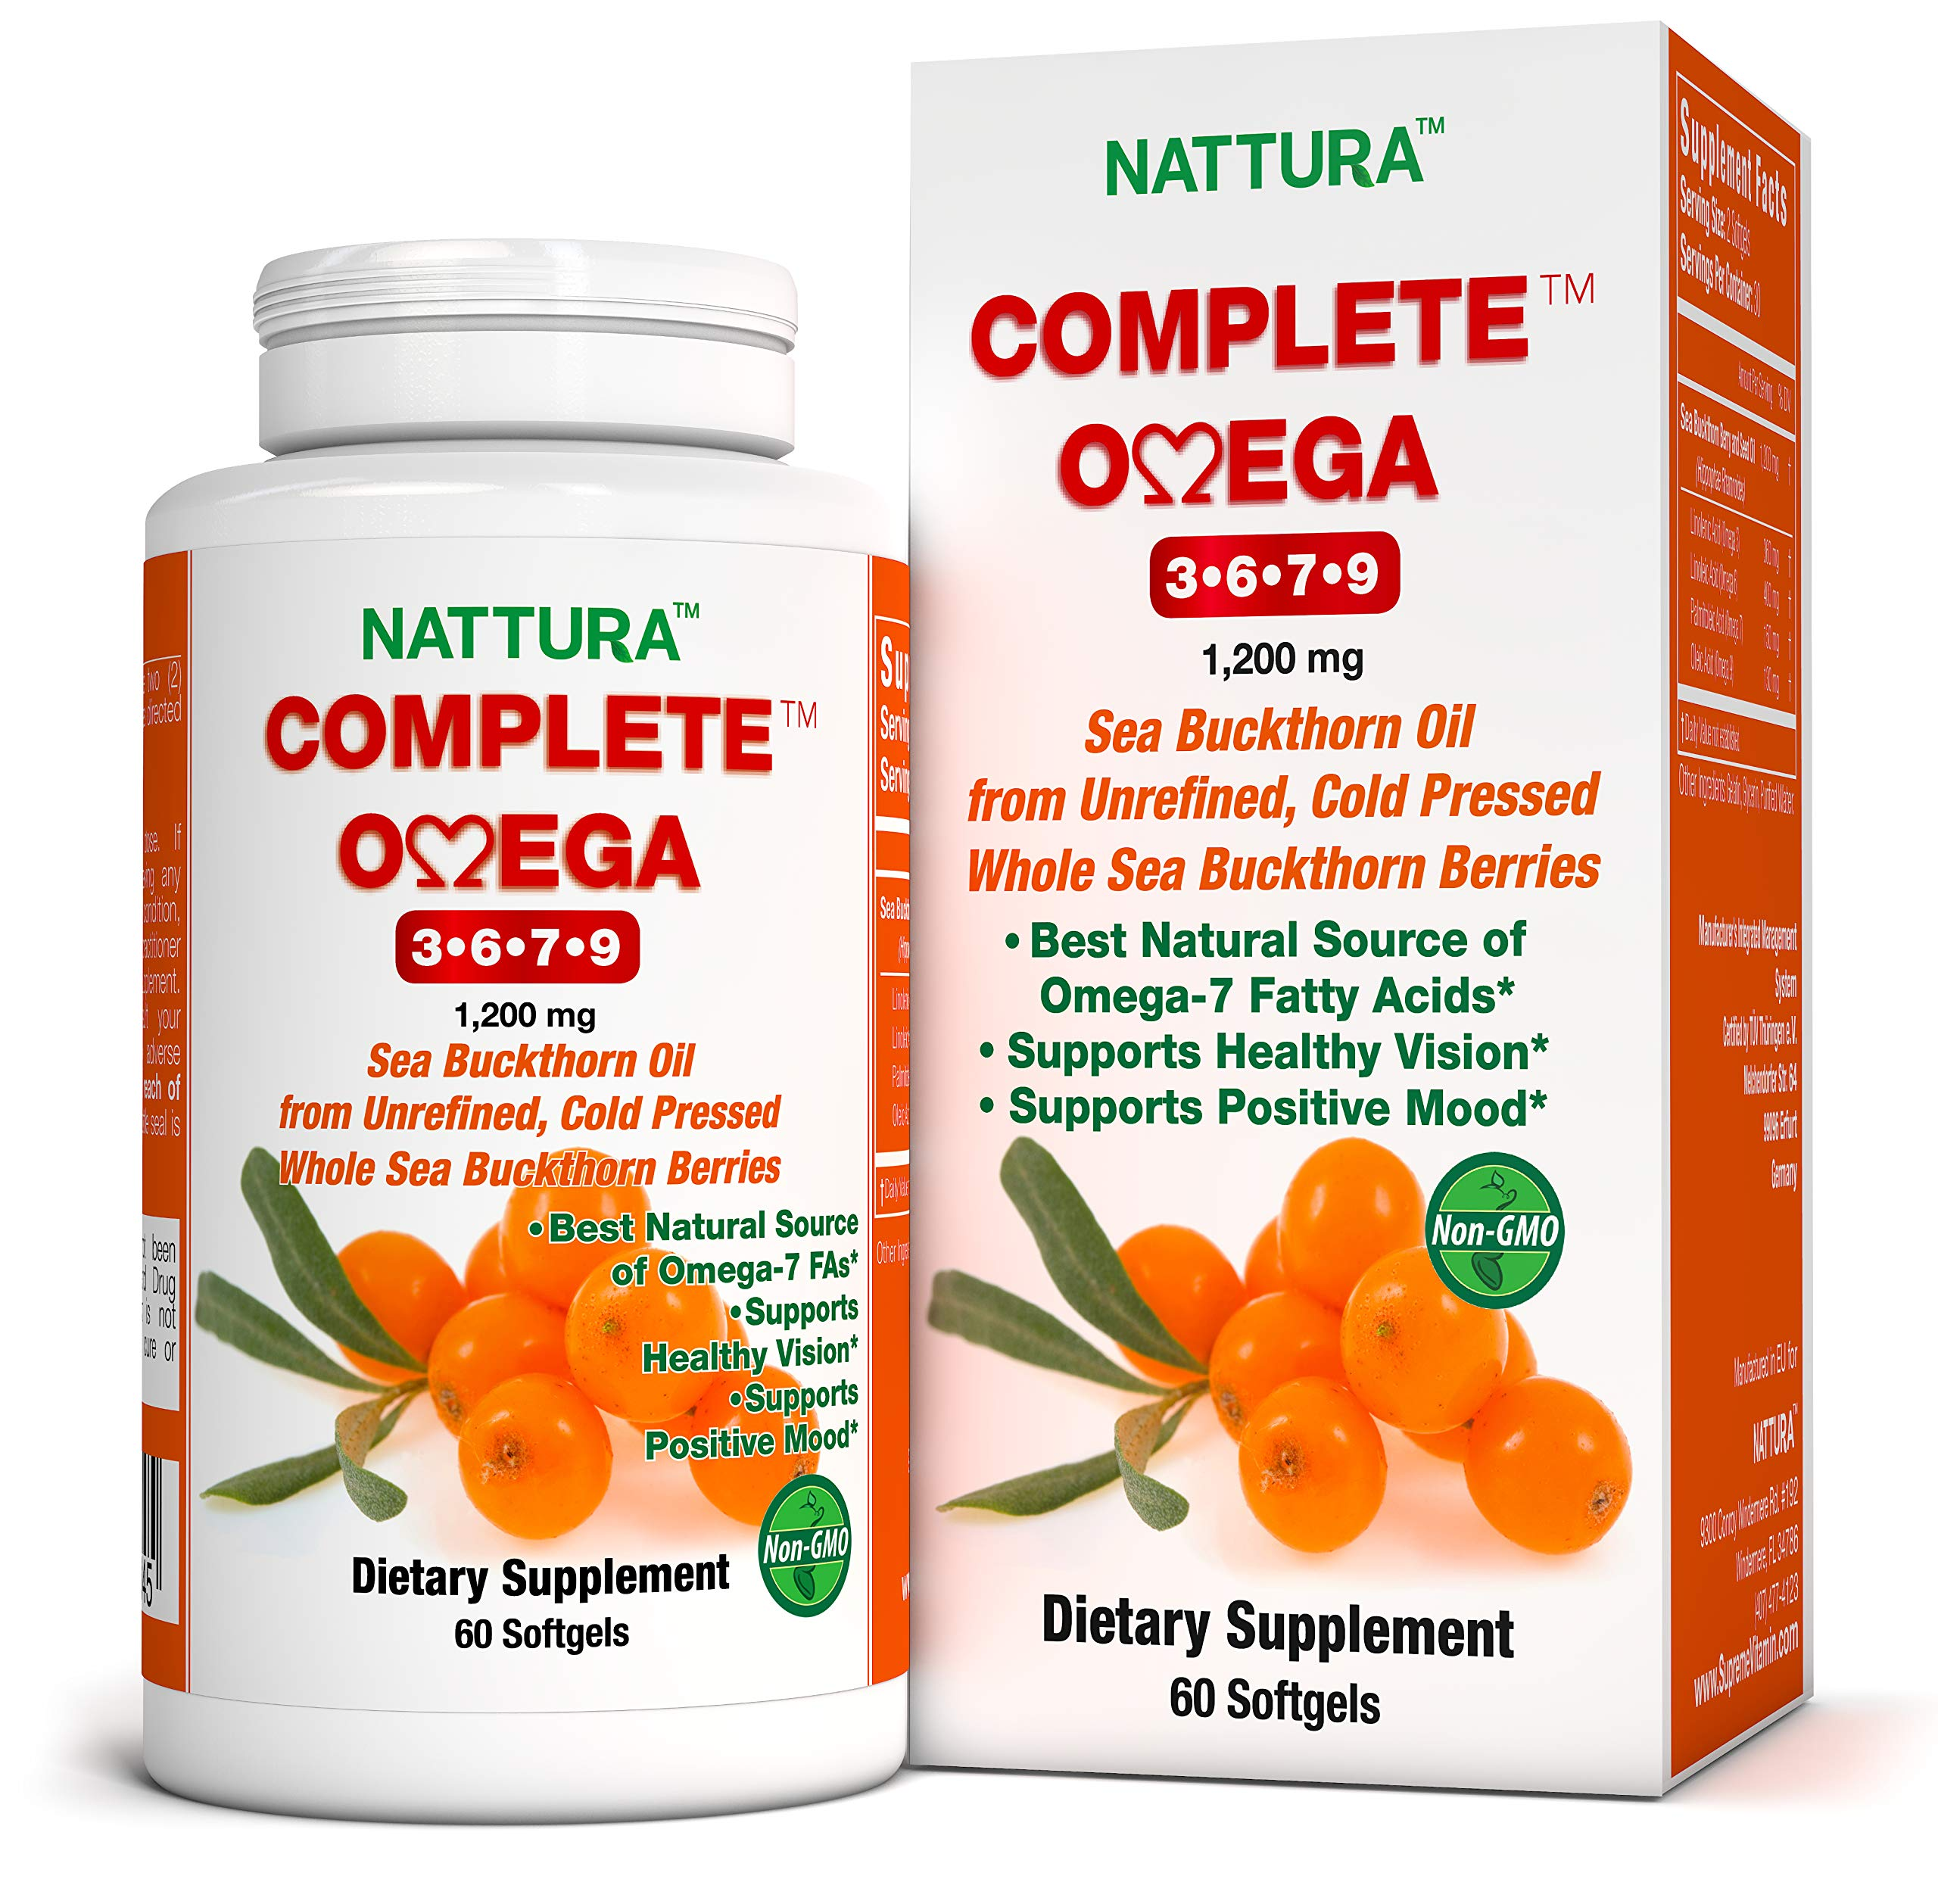 Complete Omega 3-6-7-9 * Pure Sea Buckthorn Oil * European Quality * from Unrefined, Cold Pressed Whole Sea Buckthorn Wild Berries - Non-GMO, Certified Kosher, Gluten-Free (1 Bottle (60 Capsules)) by Nattura